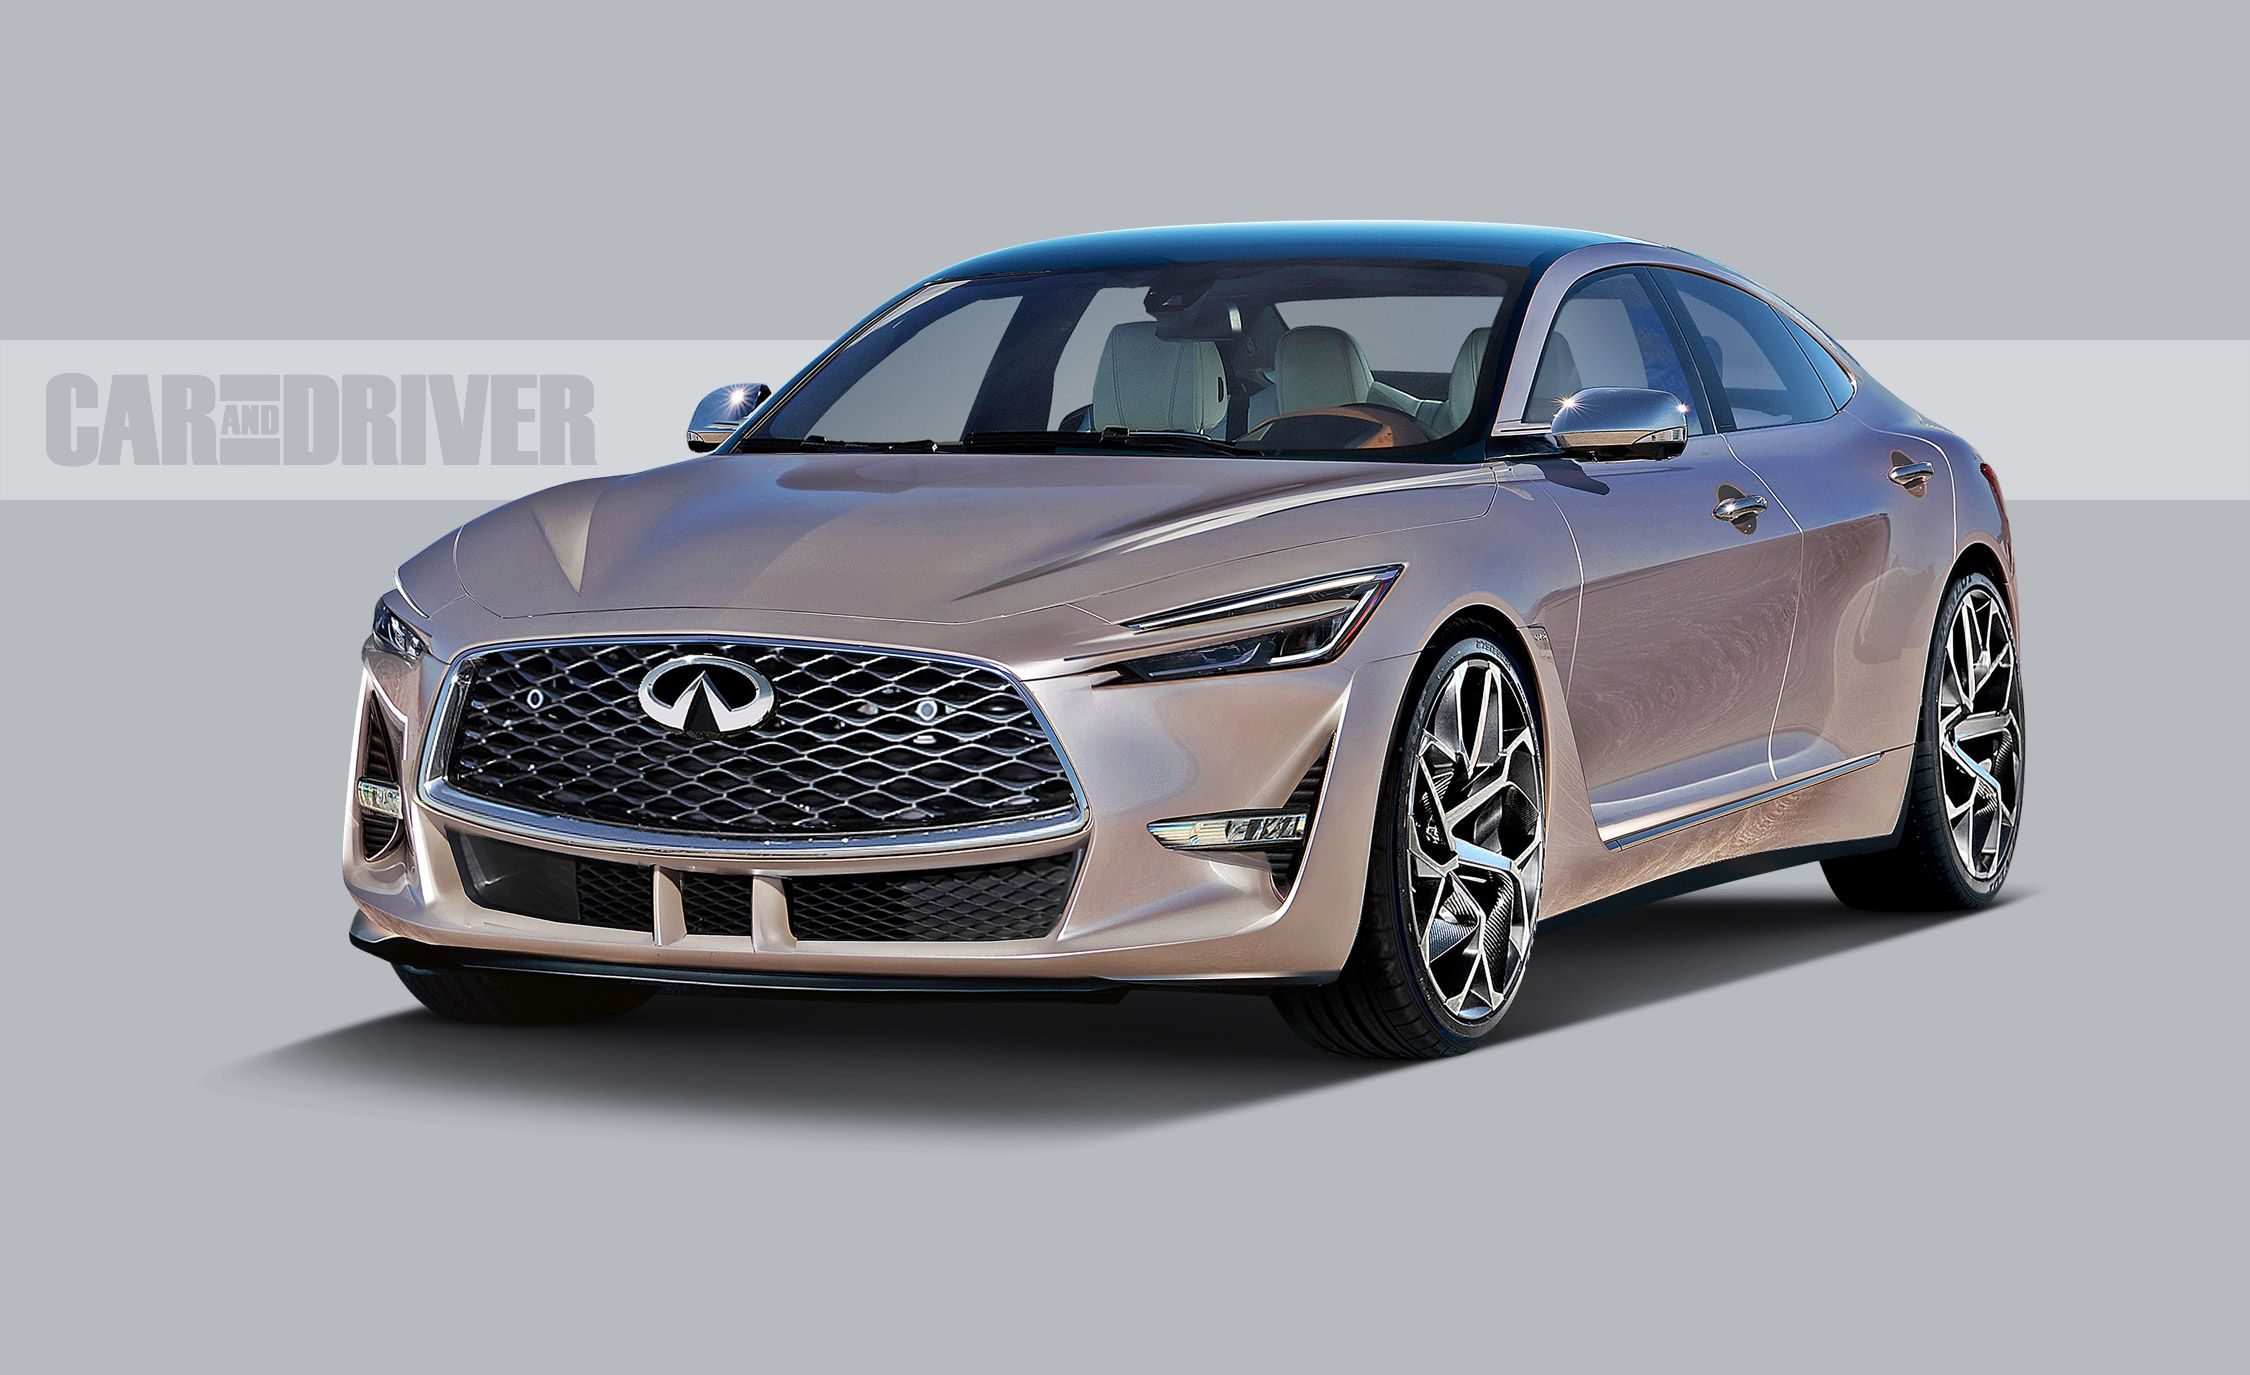 2017 Trucks Worth Waiting For >> 2022 Infiniti Q80: Inspiration with a Capital Q | 25 Cars Worth Waiting For | Car and Driver